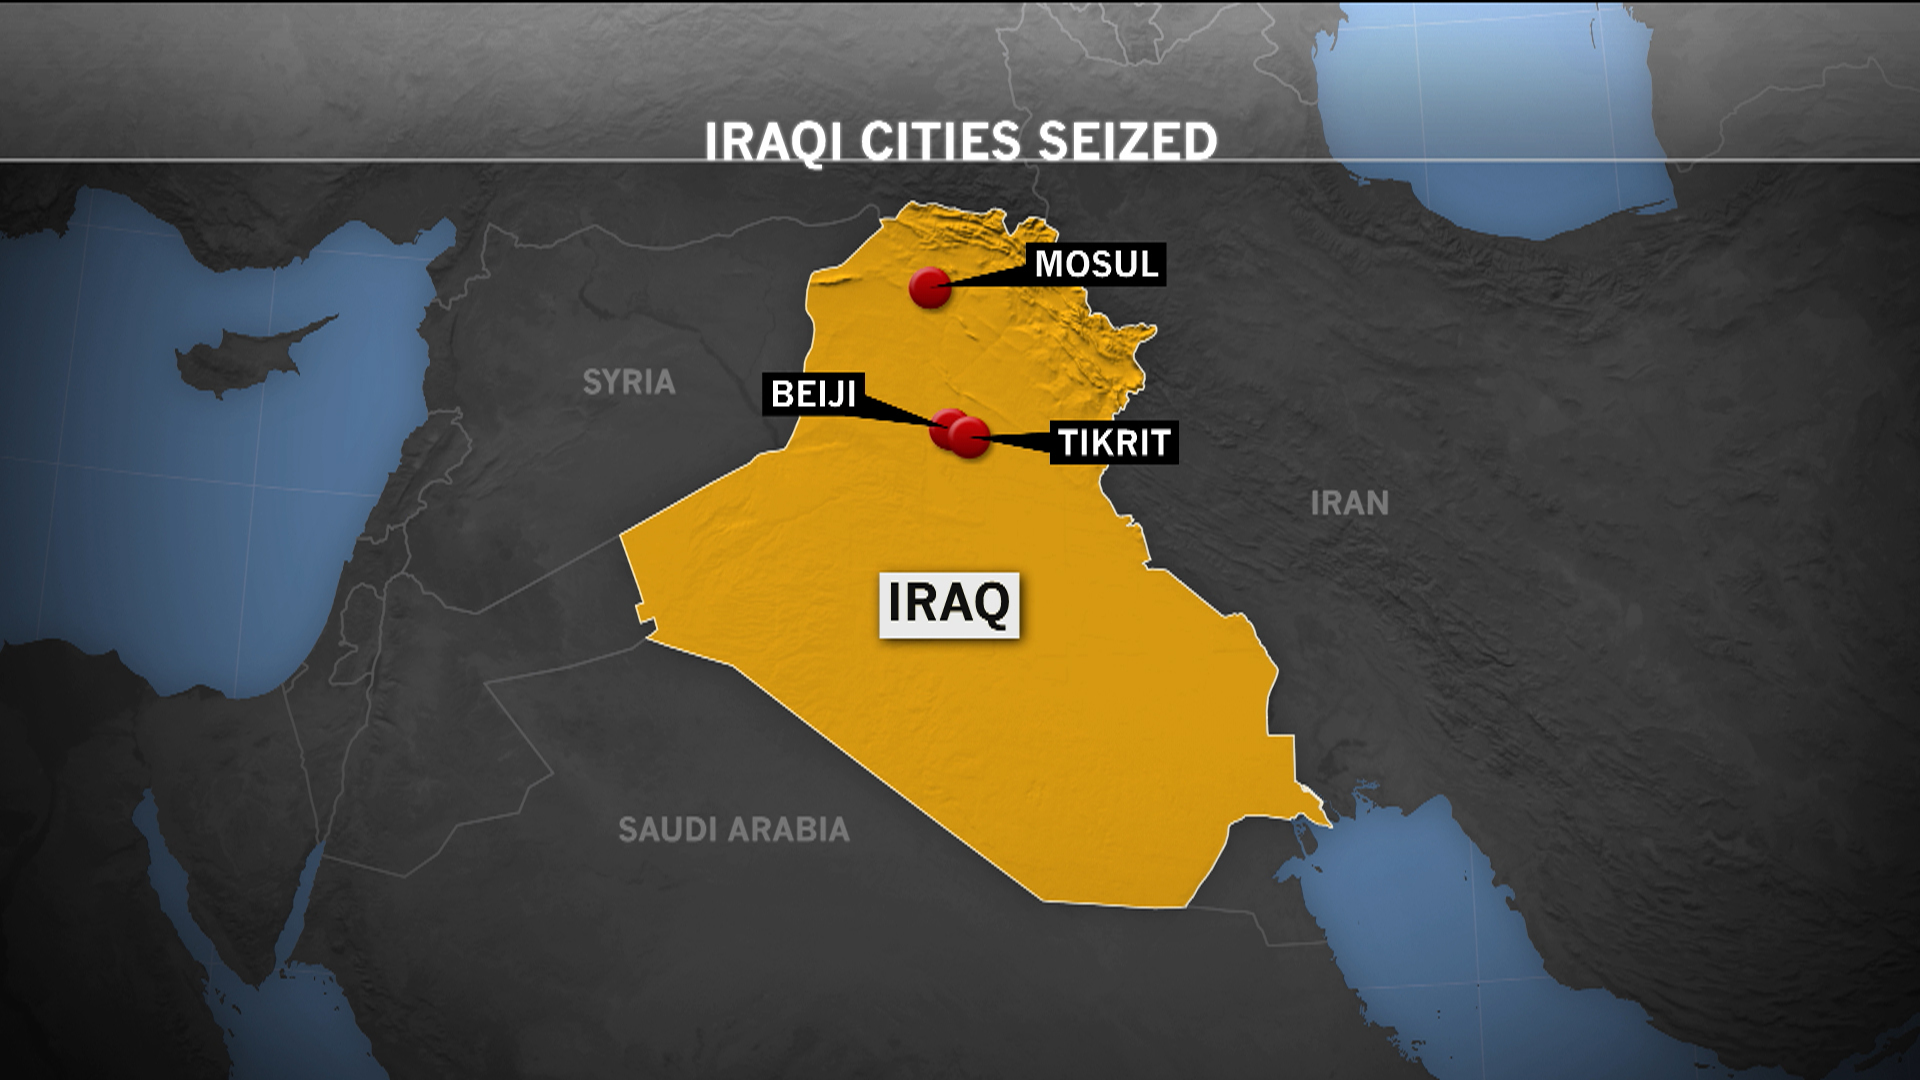 The collapse in Iraq continues